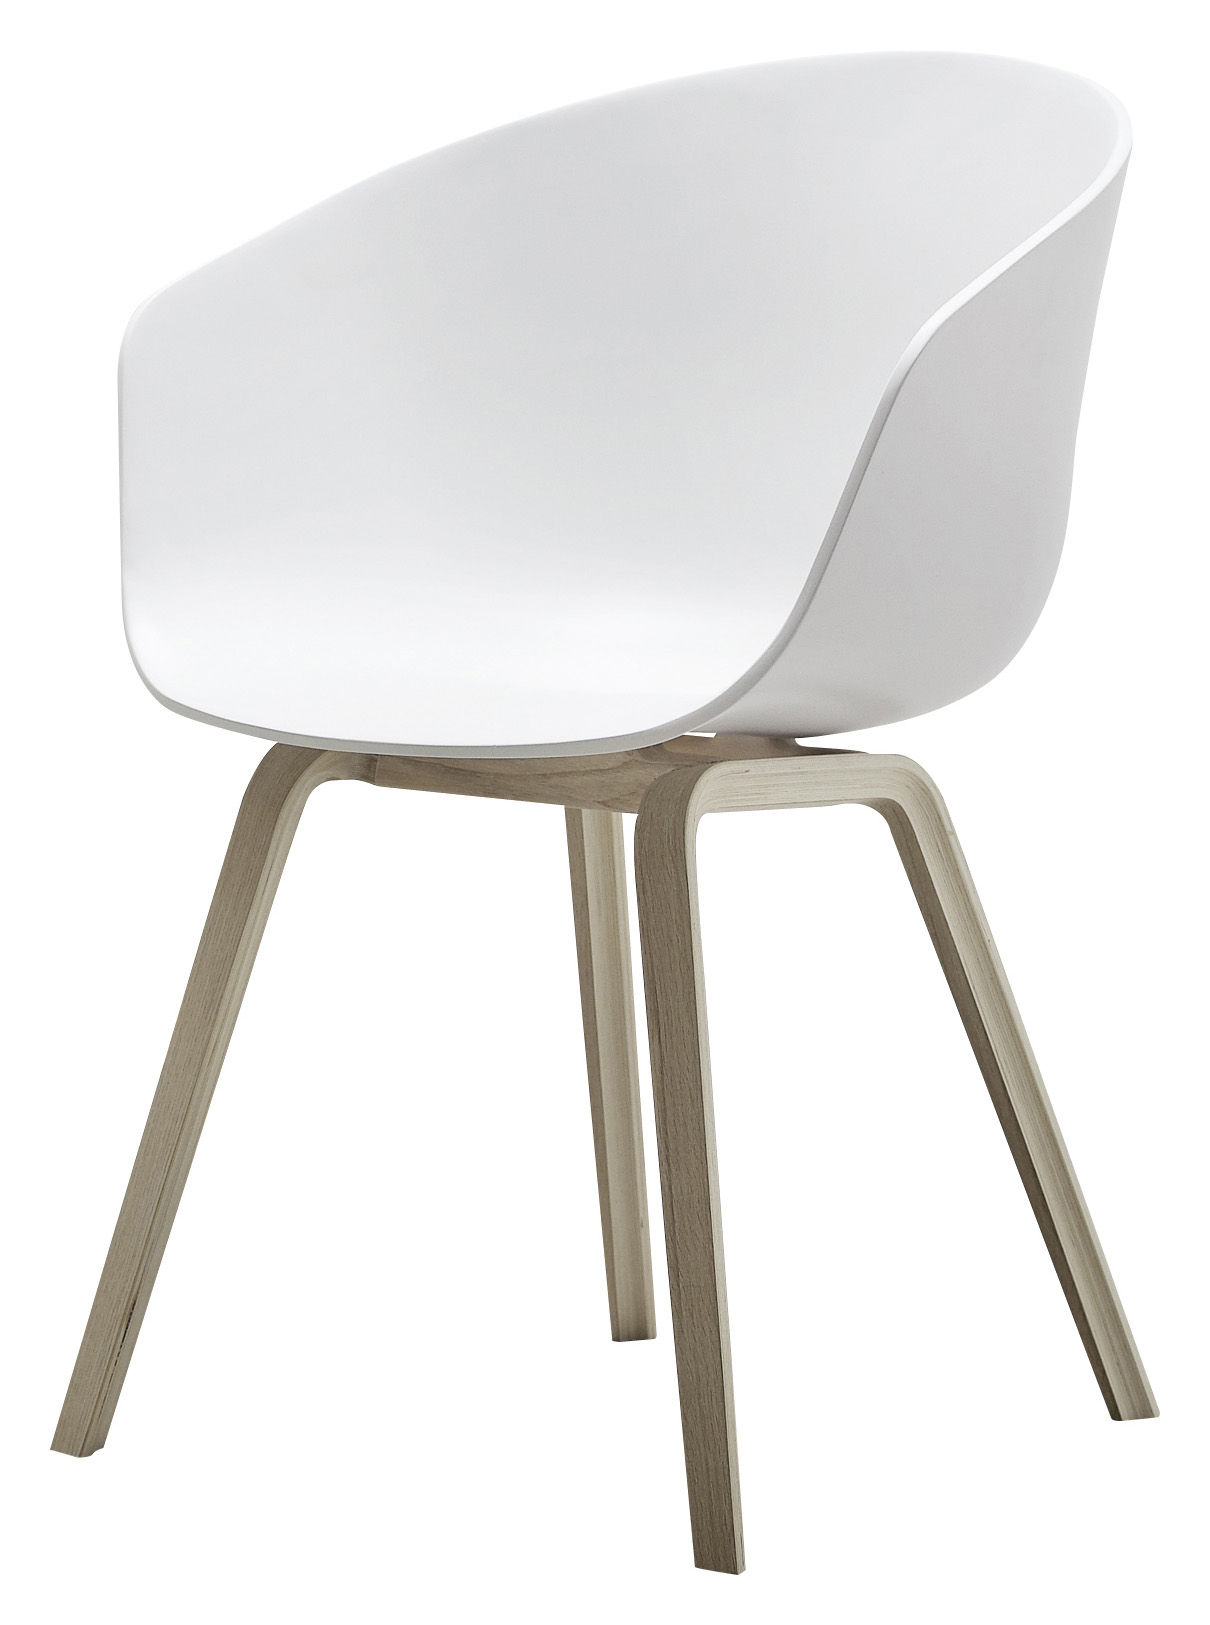 Furniture - Chairs - About a chair Armchair - Plastic shell & wood legs by Hay - White / Natural wood feet - Oak, Polypropylene